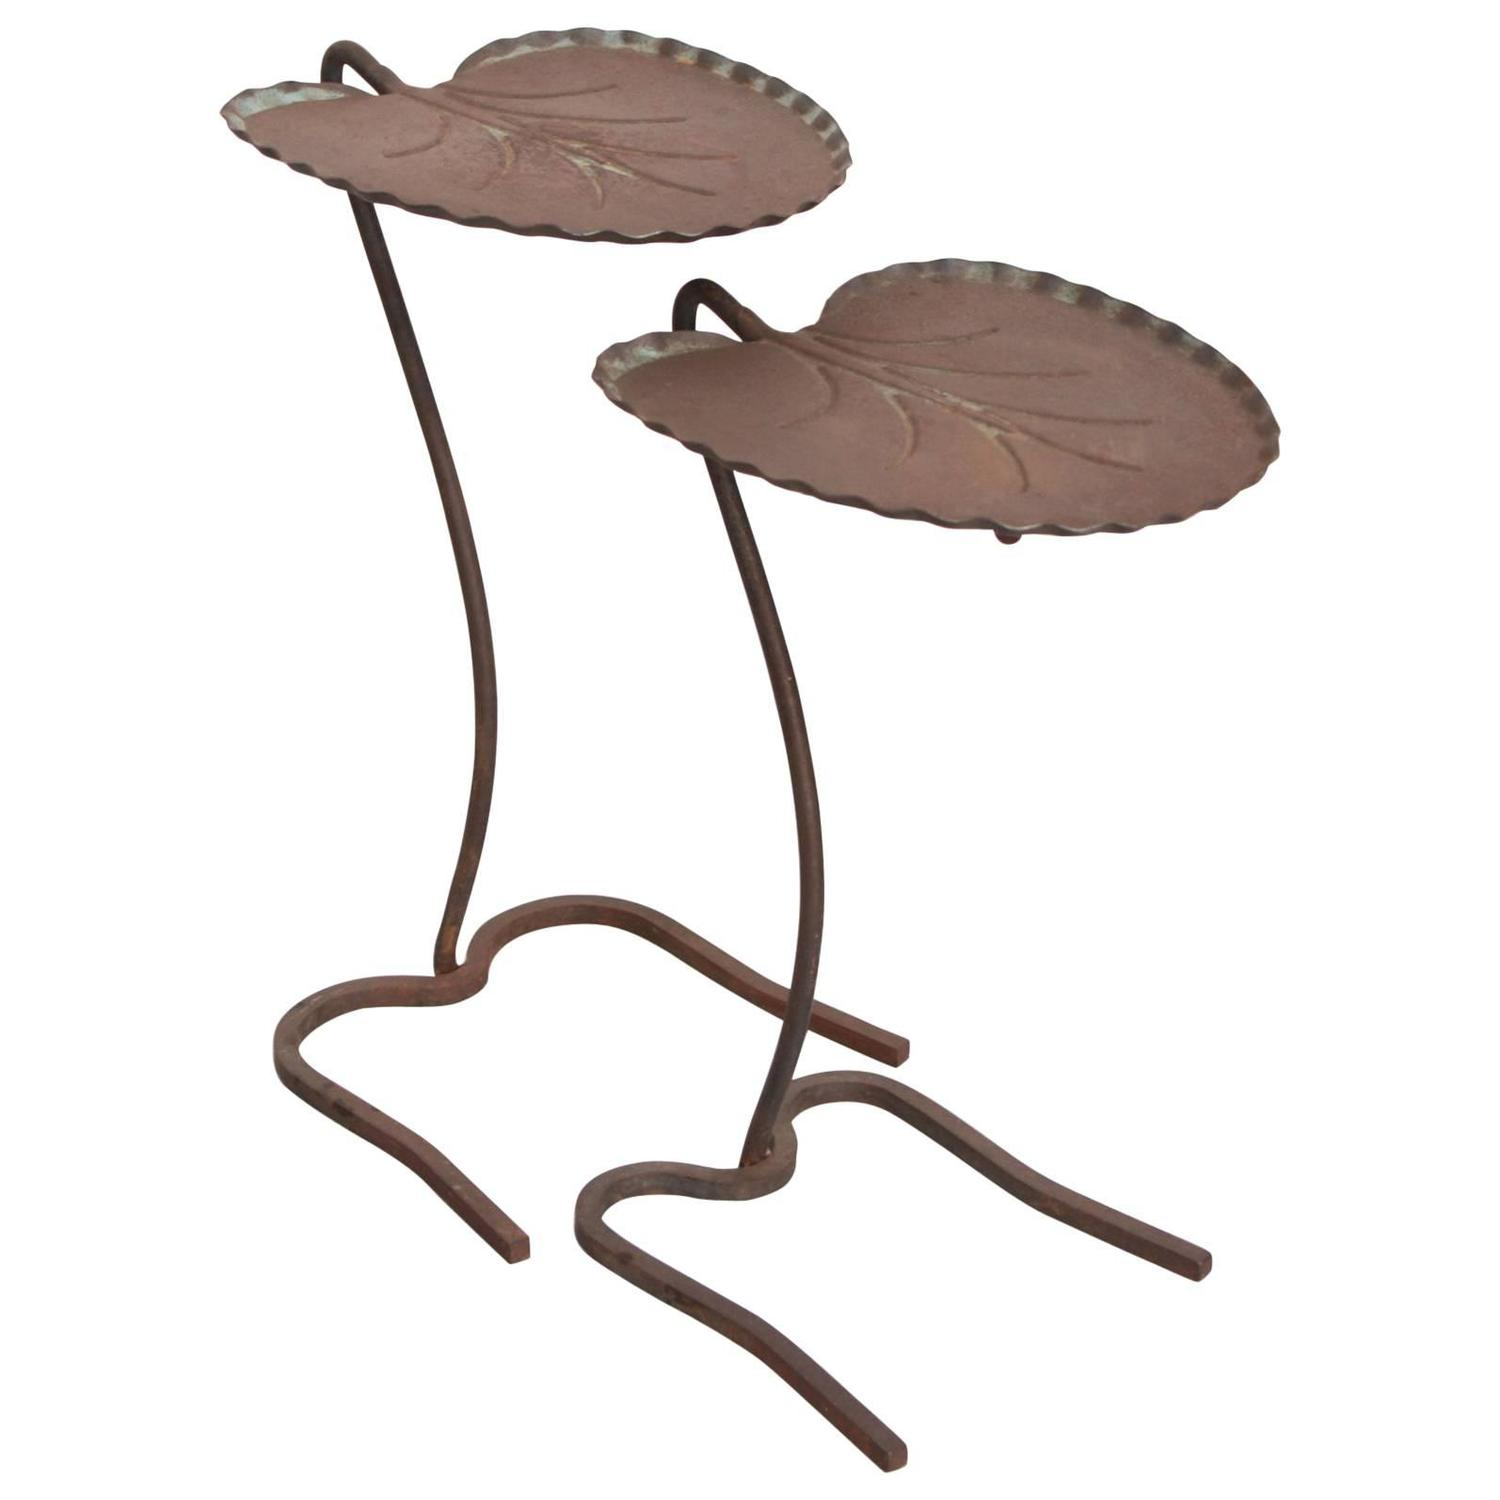 Salterini Wrought Iron Lily Pad Nesting Tables at 1stdibs